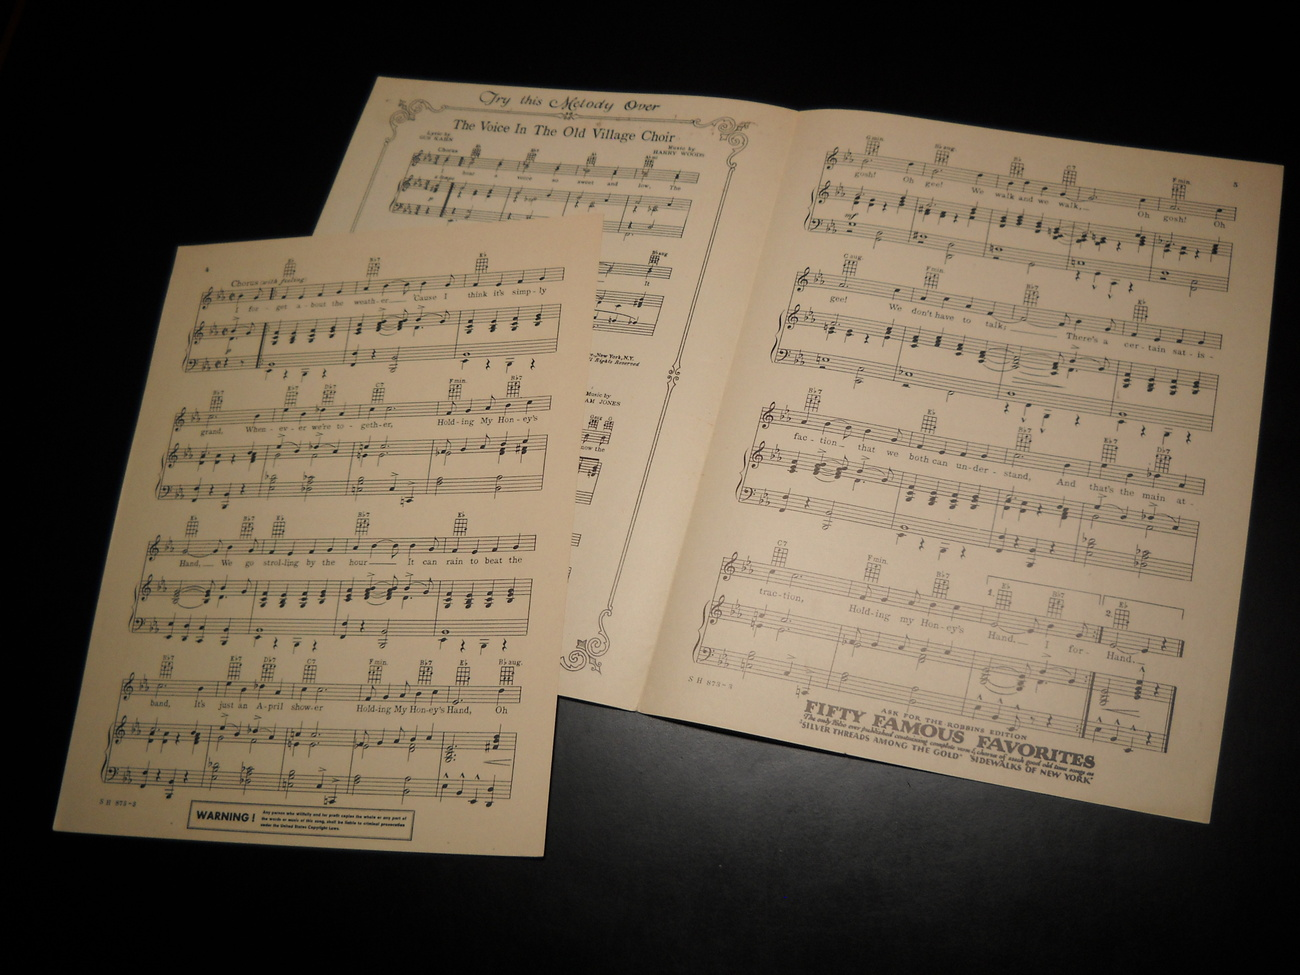 Sheet_music_holding_my_honey_s_hand_bernie_cummins_1932_mgm_robbins_06